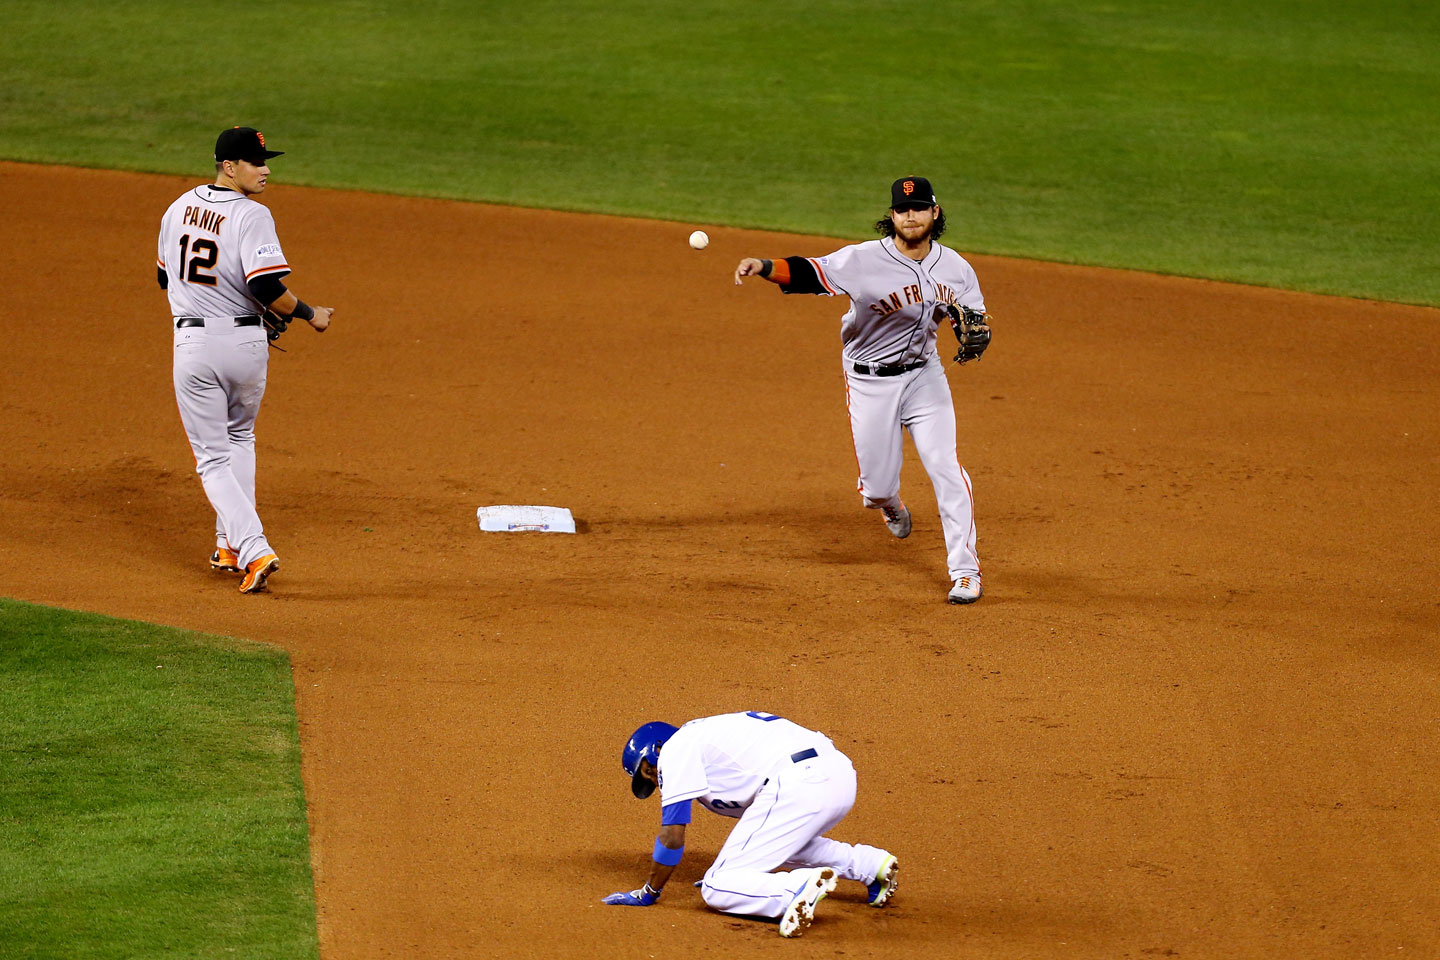 Brandon Crawford fires to first to complete a 4-6-3 double play in the eighth inning. (Ed Zurga/Getty Images)